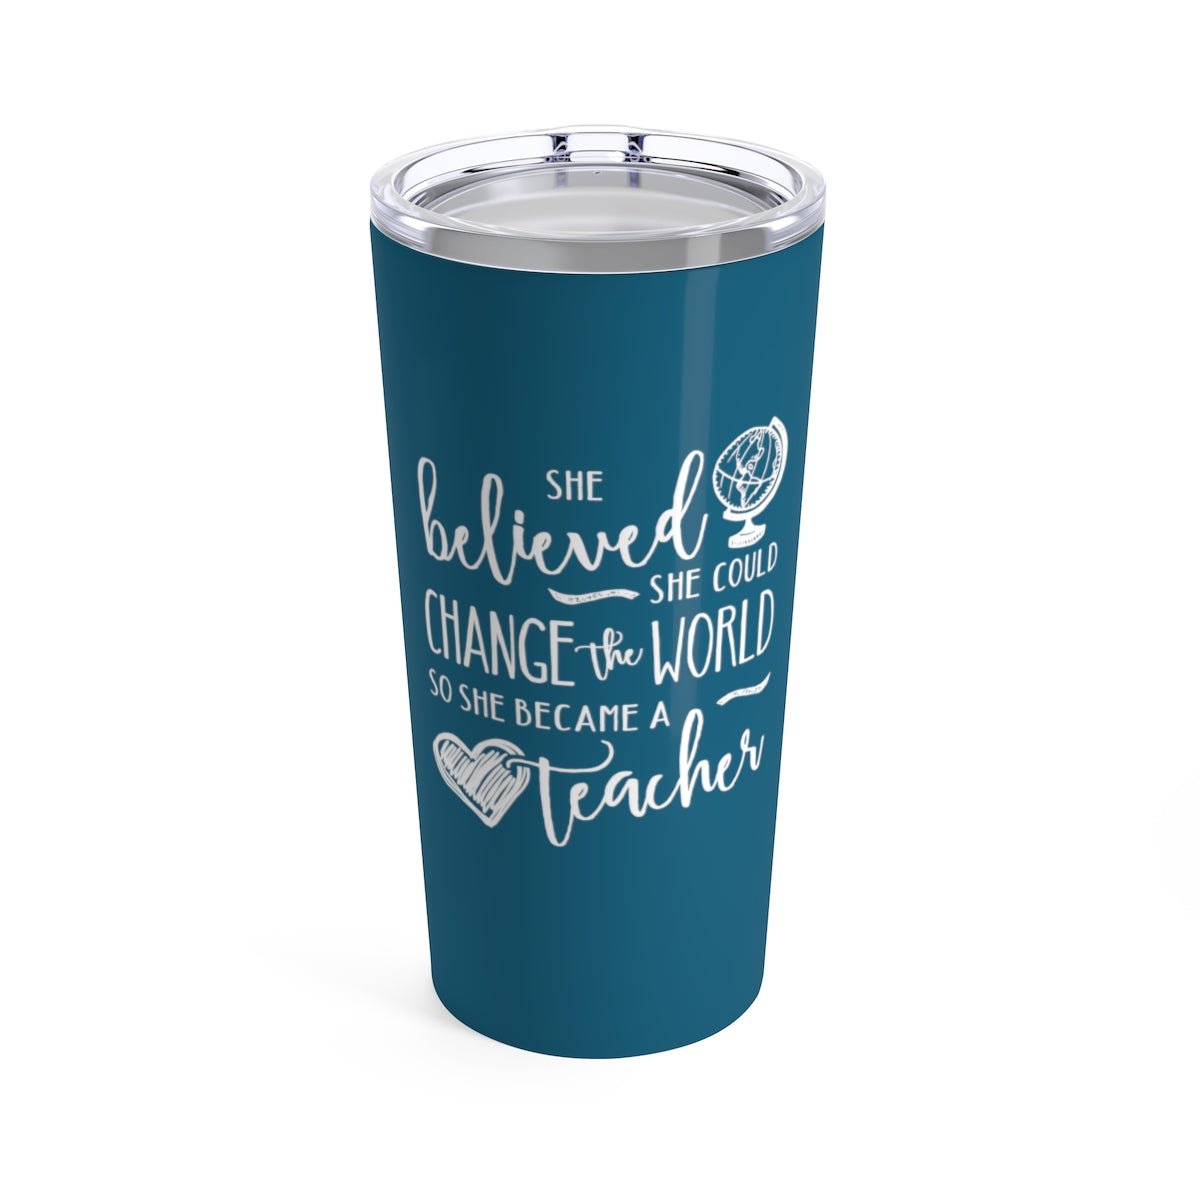 Change the World Teacher Cup - 20oz Teacher Tumbler Gift